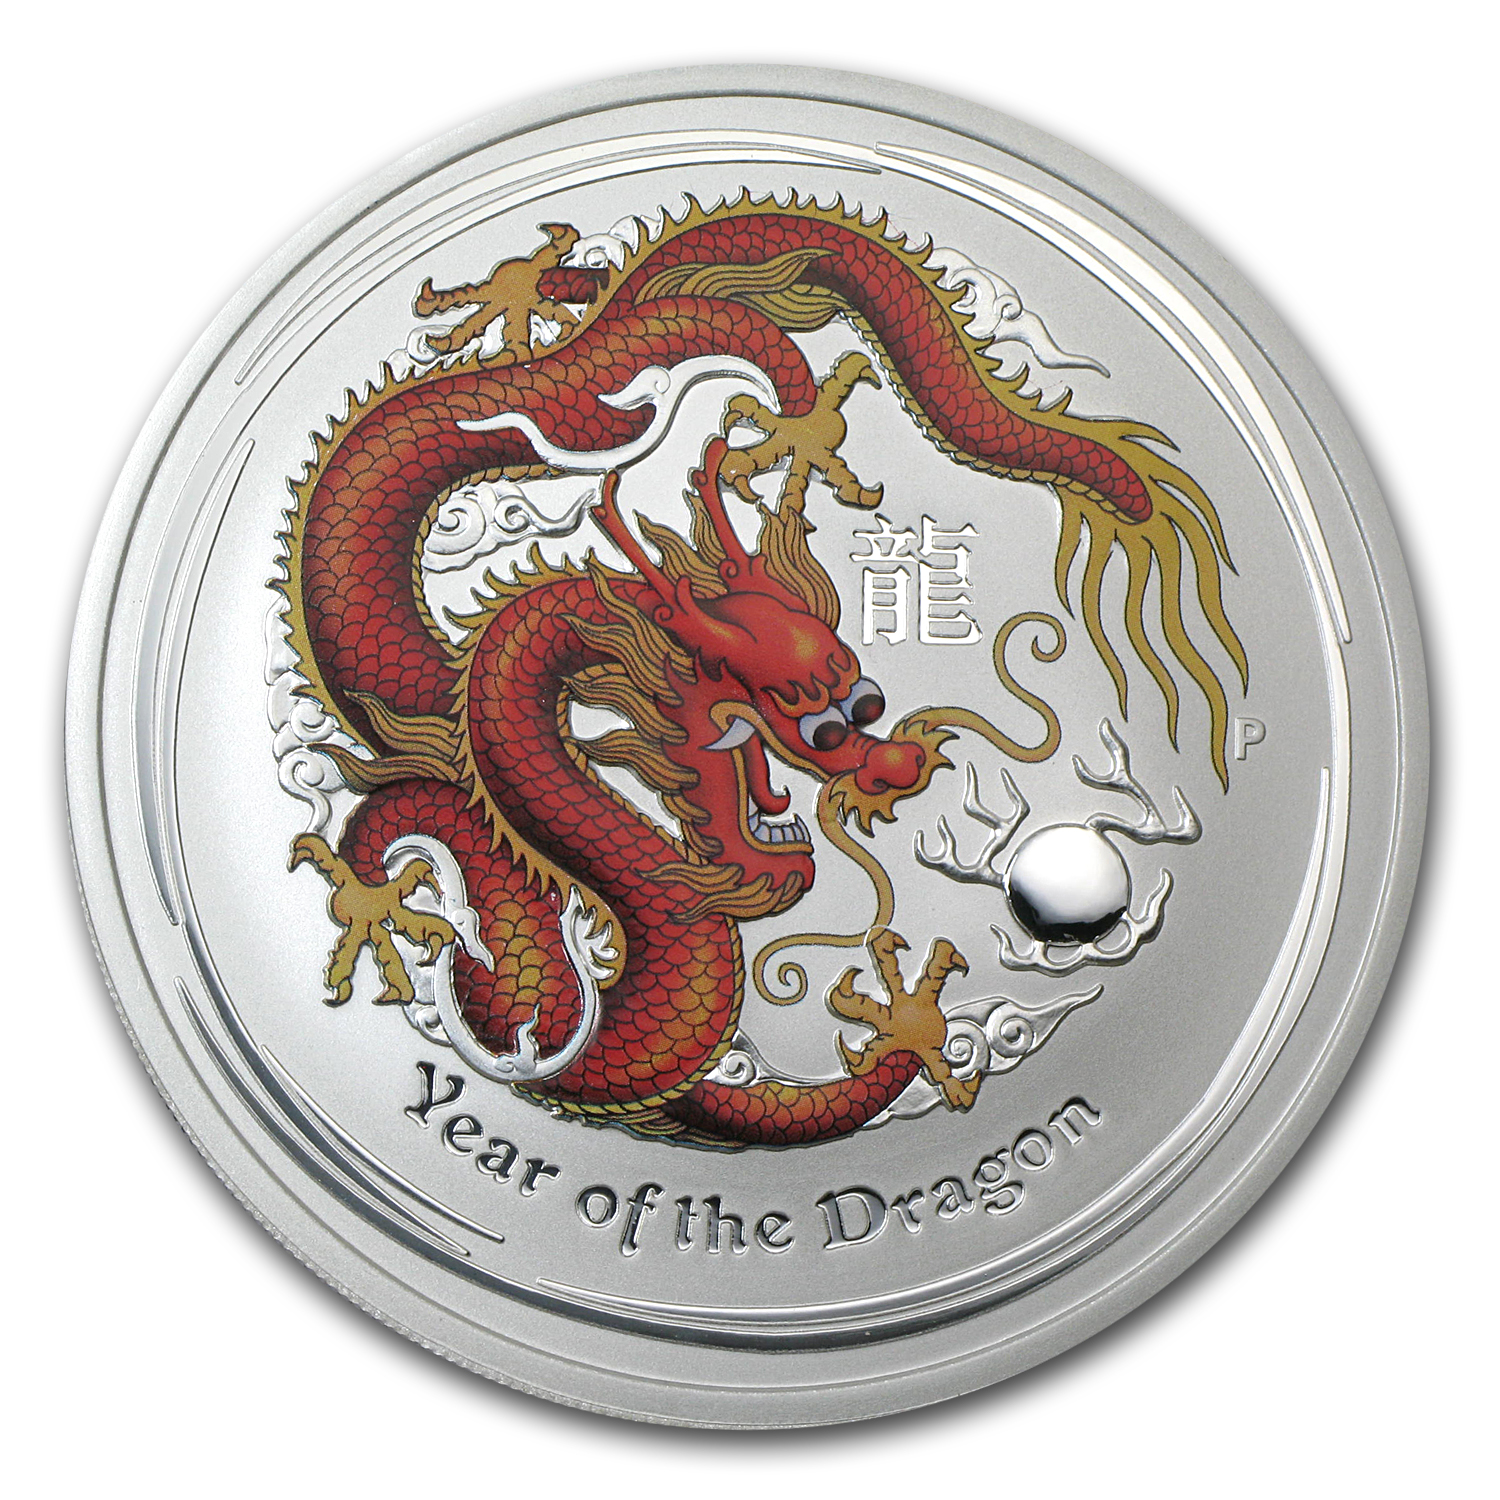 2012 5 oz Silver Australian Year of the Dragon Colorized Coin